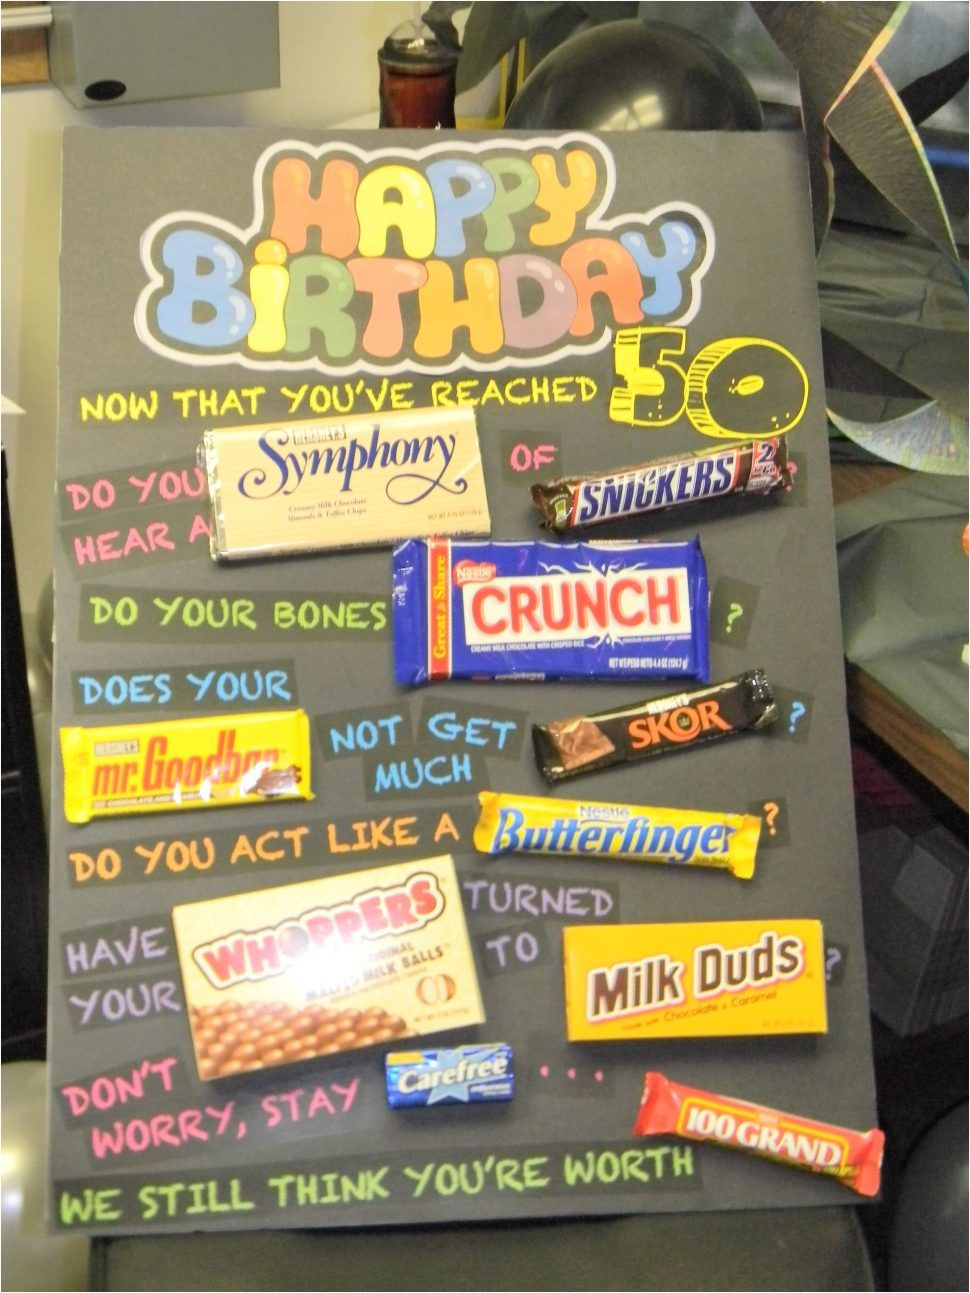 Gifts For Men 50 Stupendous 50th Birthday Gift Ideas Diy Crafty Projects 3000 Pixels 99 Excellent Photo